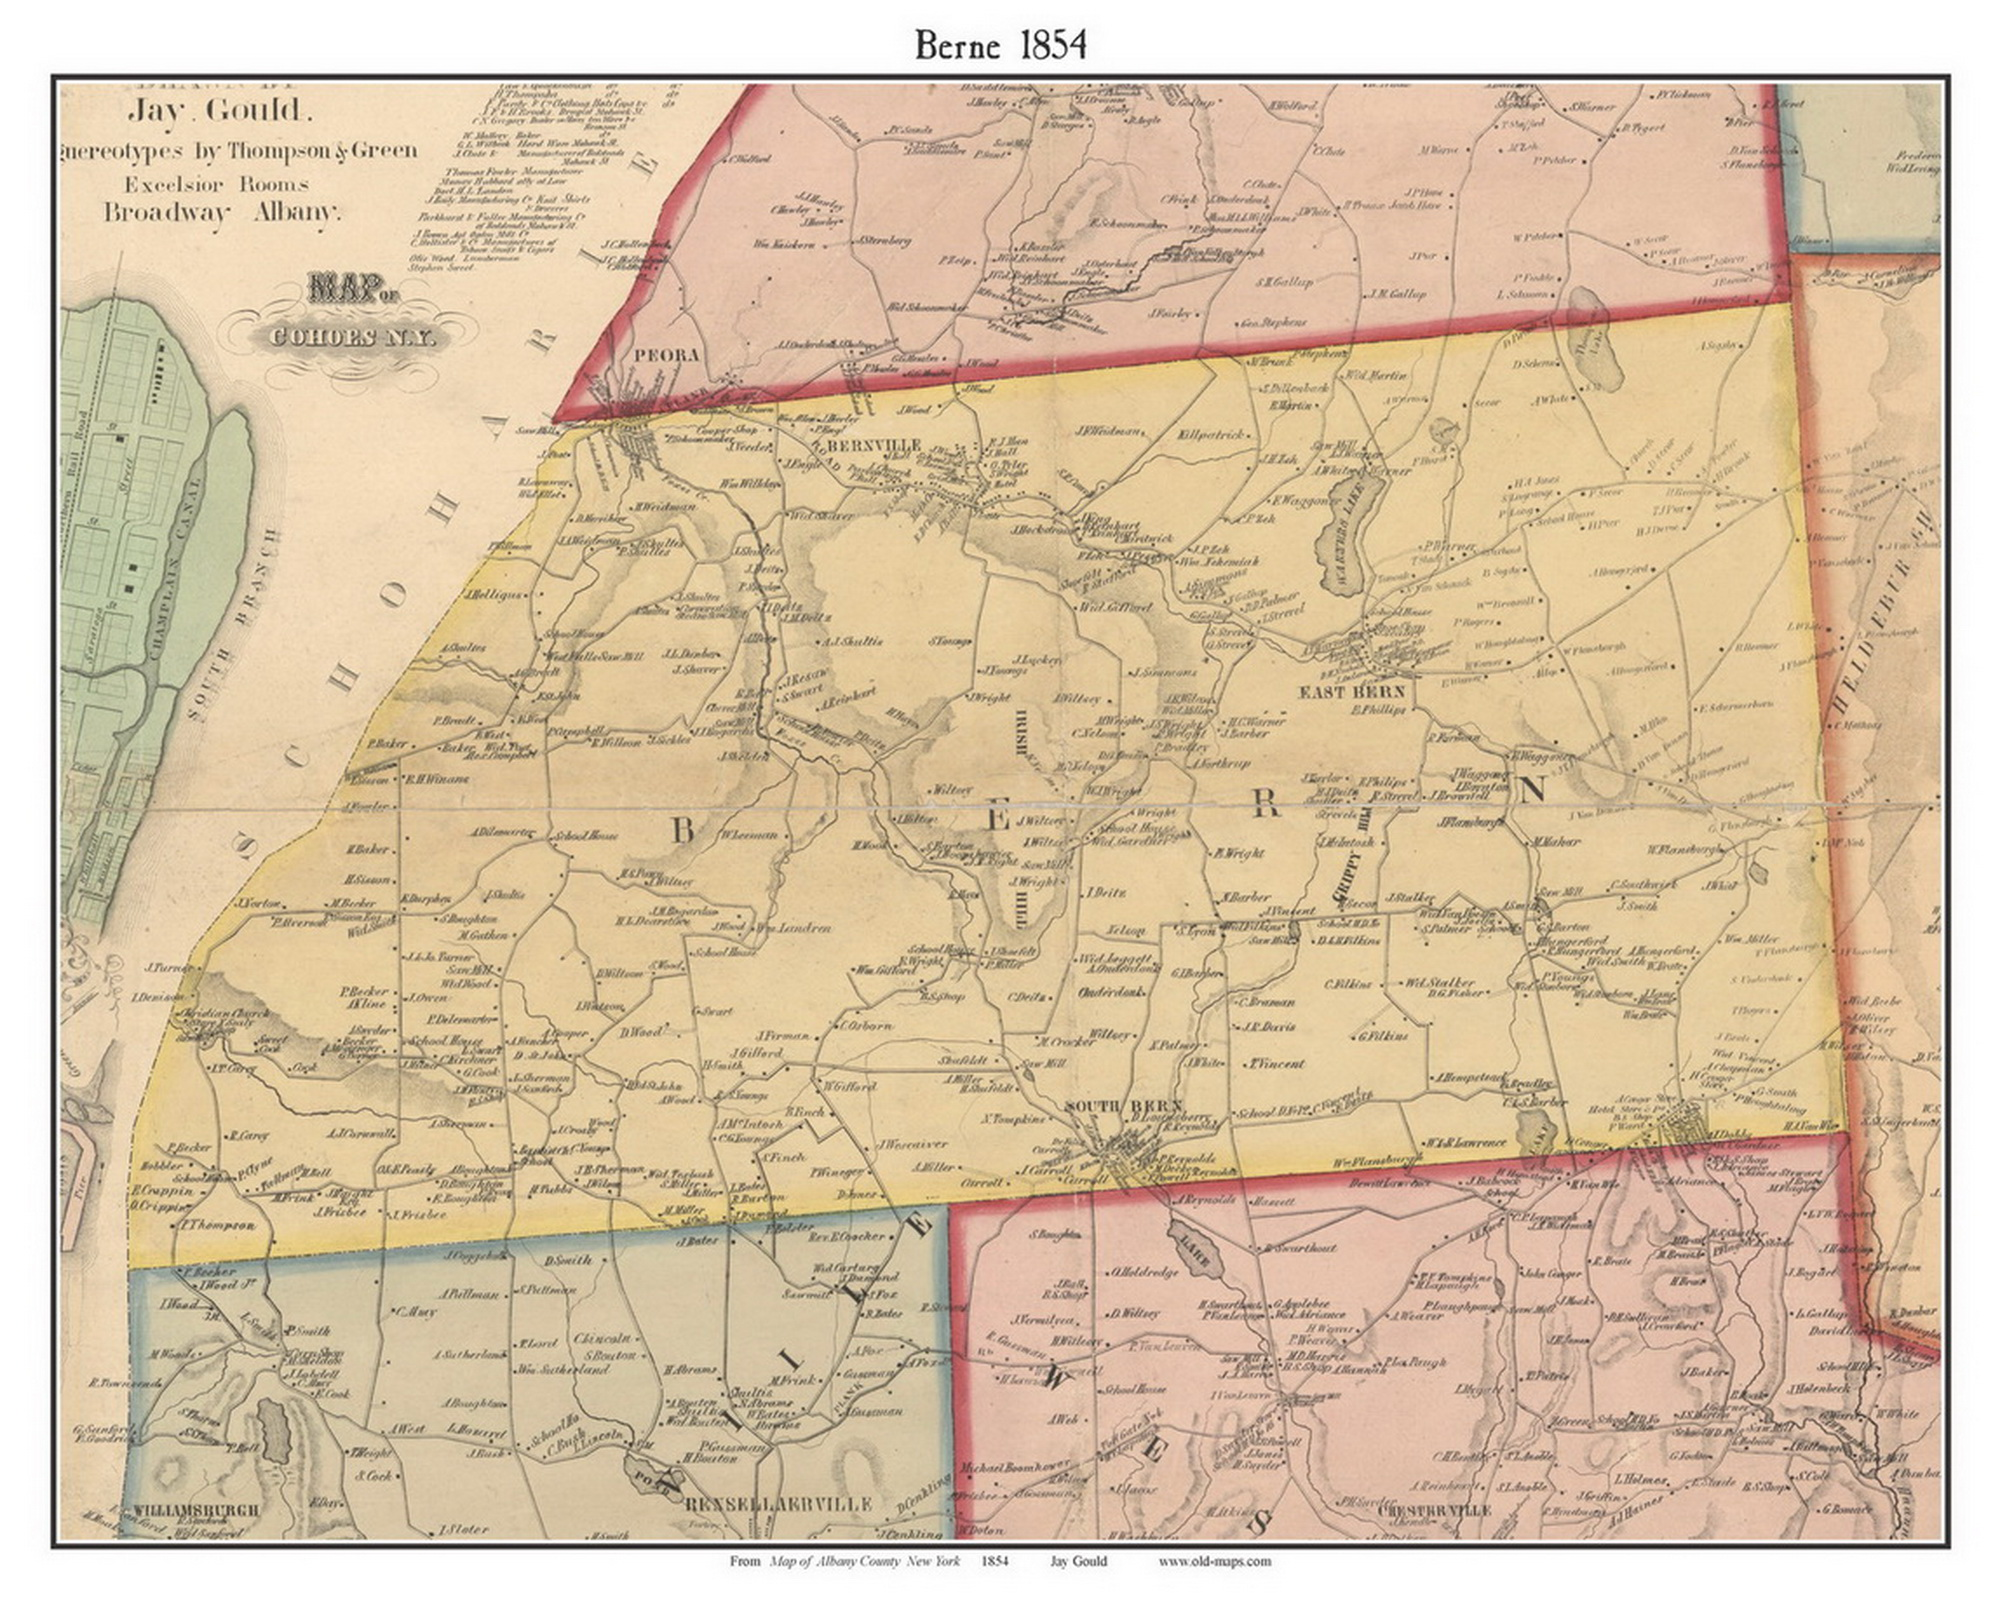 Berne New York 1854 Old Town Map Custom Print Albany Co OLD MAPS